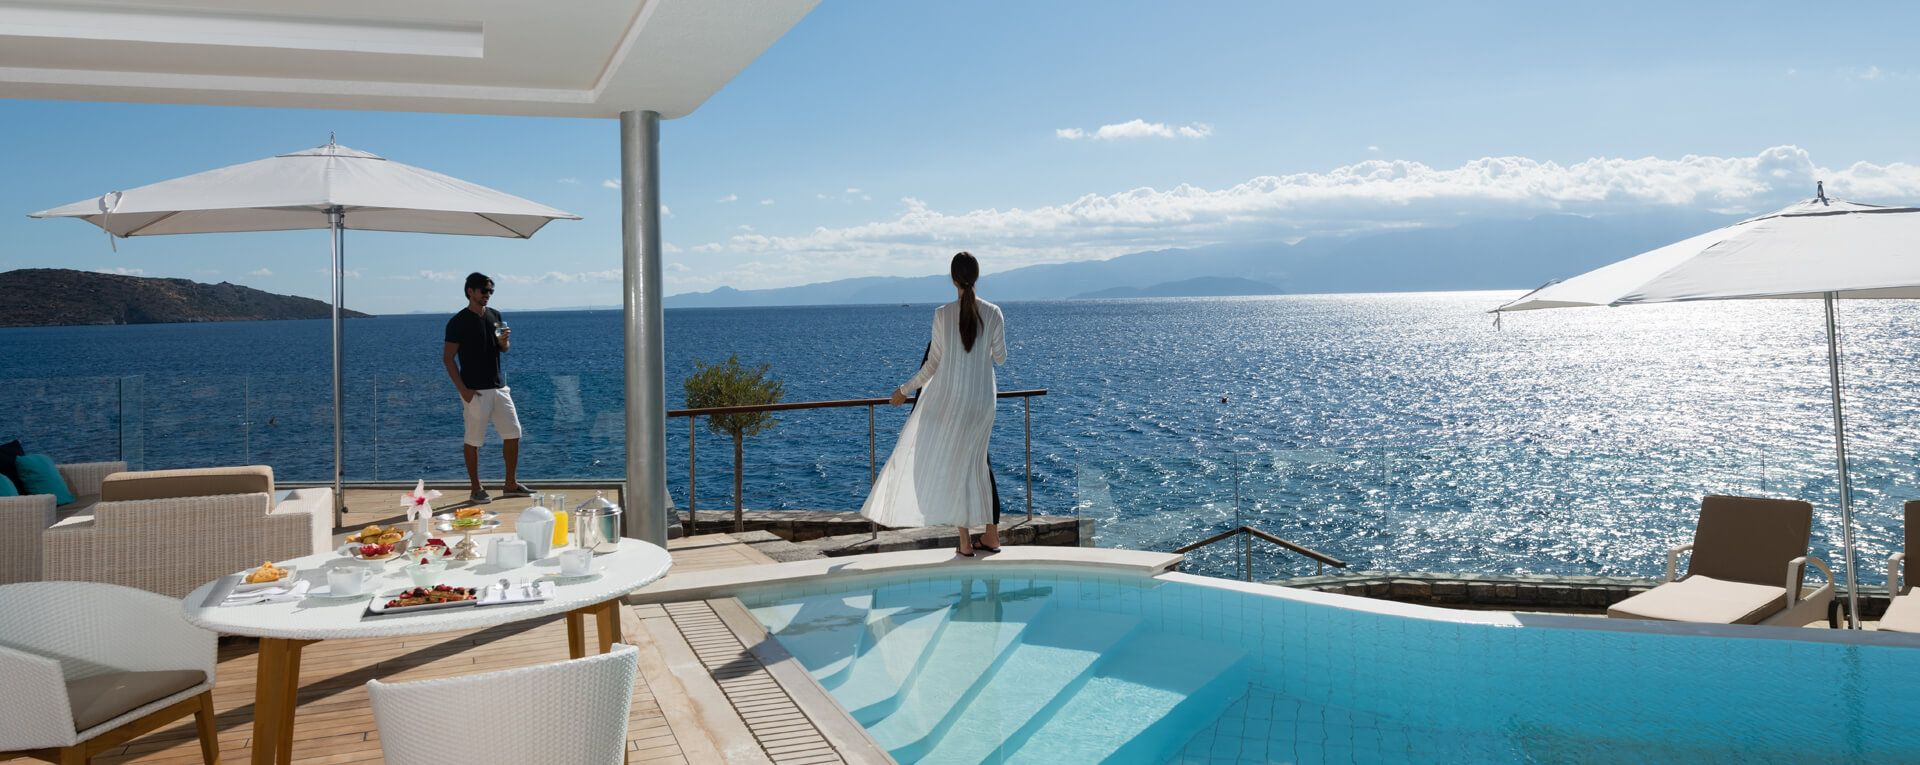 Elounda Beach Hotel & Villas and Elounda Bay Palace, Crete